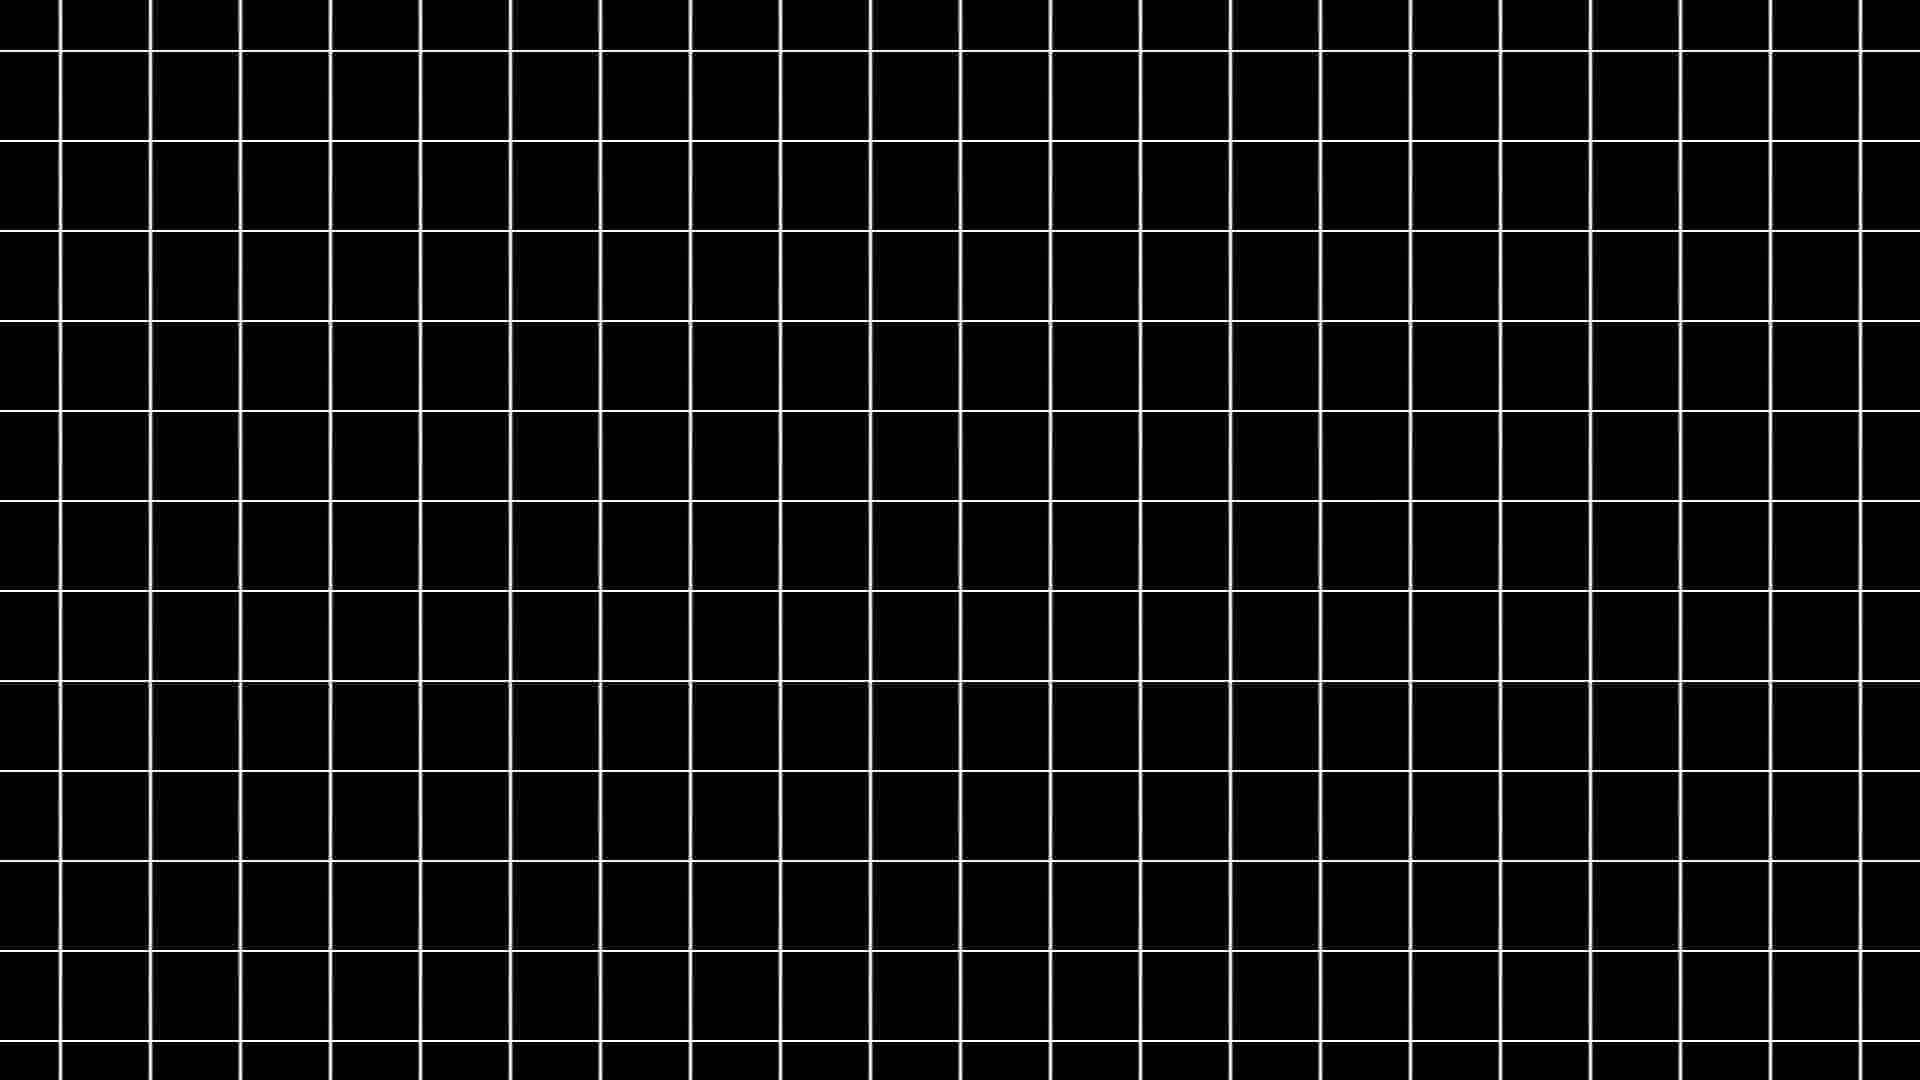 Aesthetic Black And White Grid Wallpaper Total Update